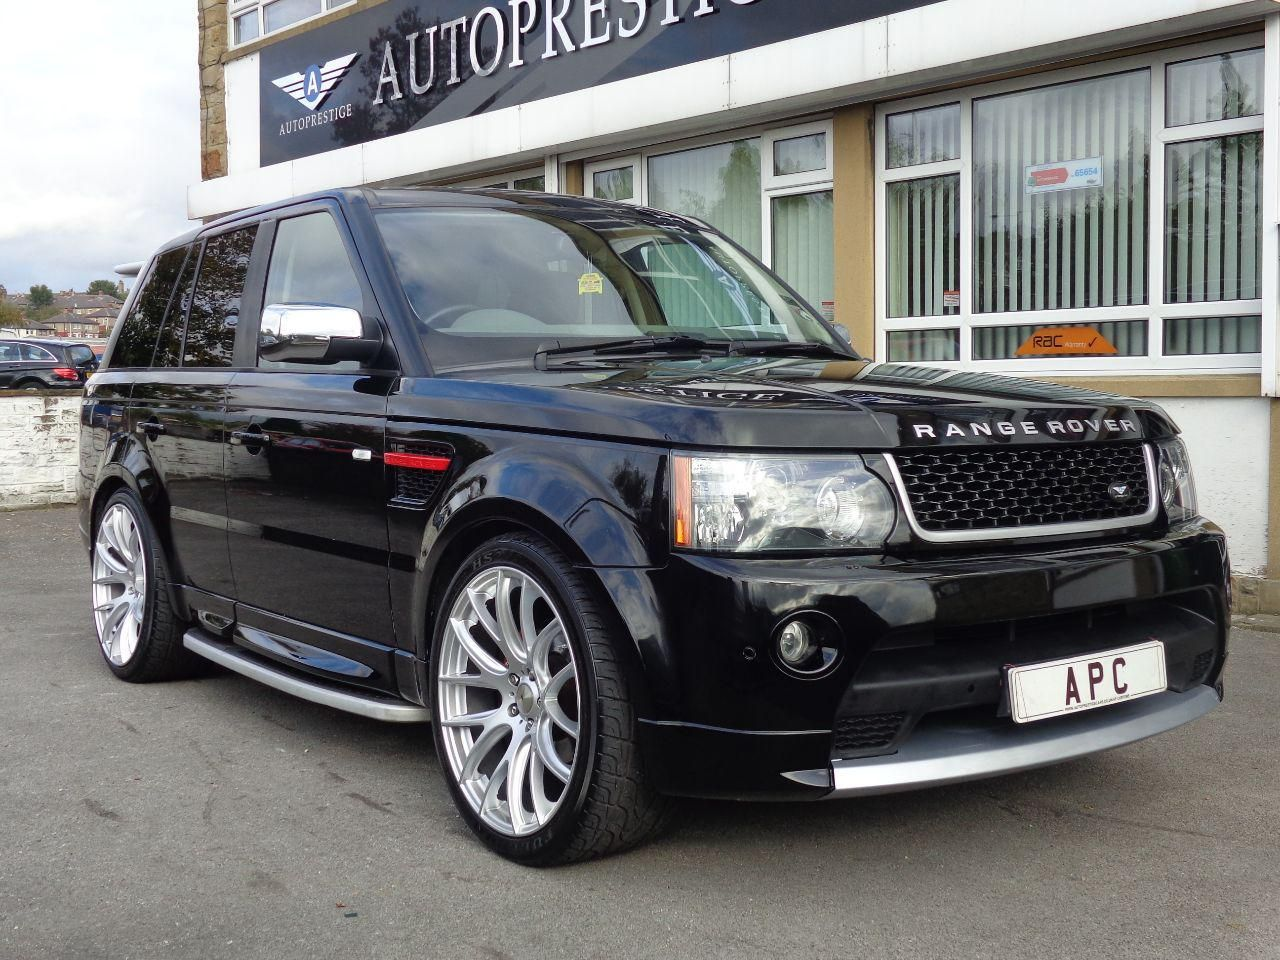 2005 range rover sport 2 7 hse tdv6 ap customs genuine 2012 autobiography upgrade 4x4 metallic. Black Bedroom Furniture Sets. Home Design Ideas